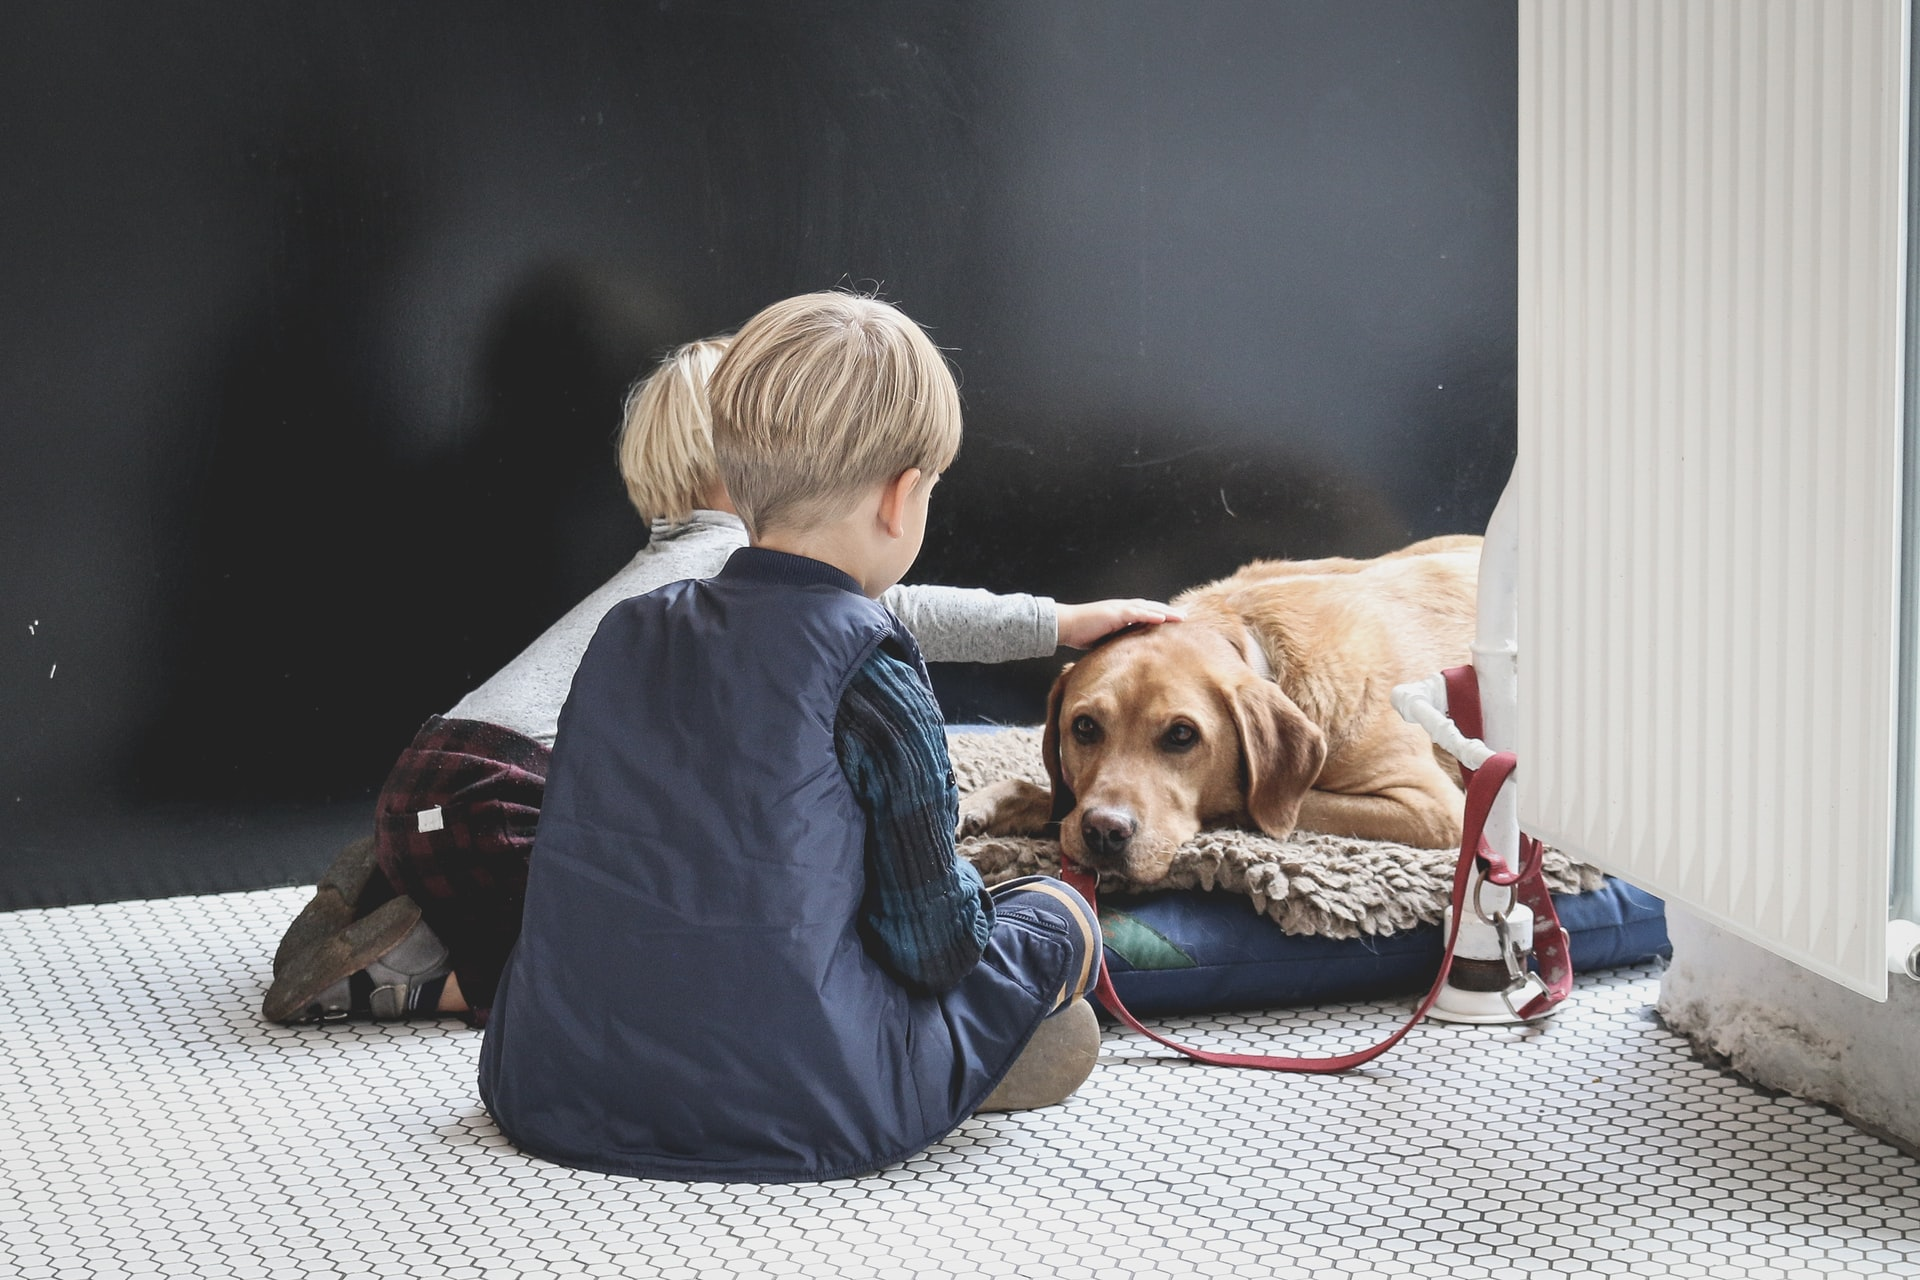 Best dog breeds for people with children, The Manc